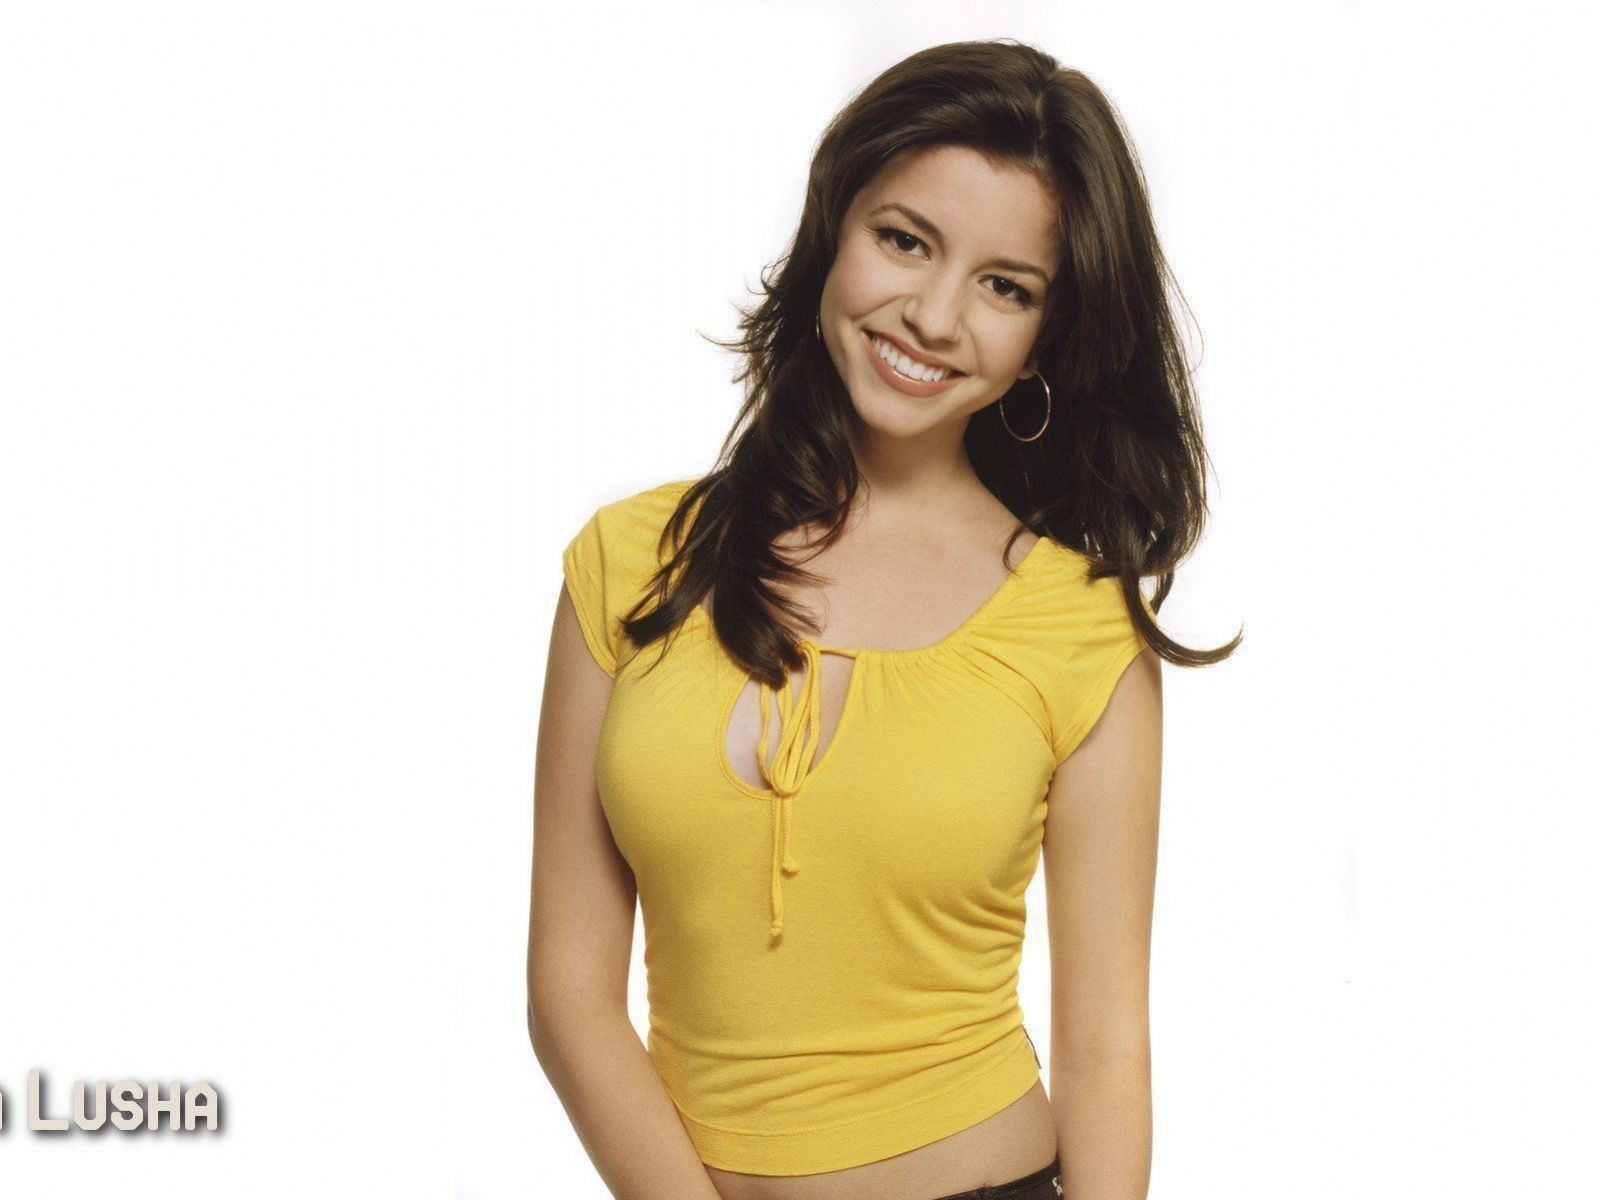 masiela lusha naked quotes